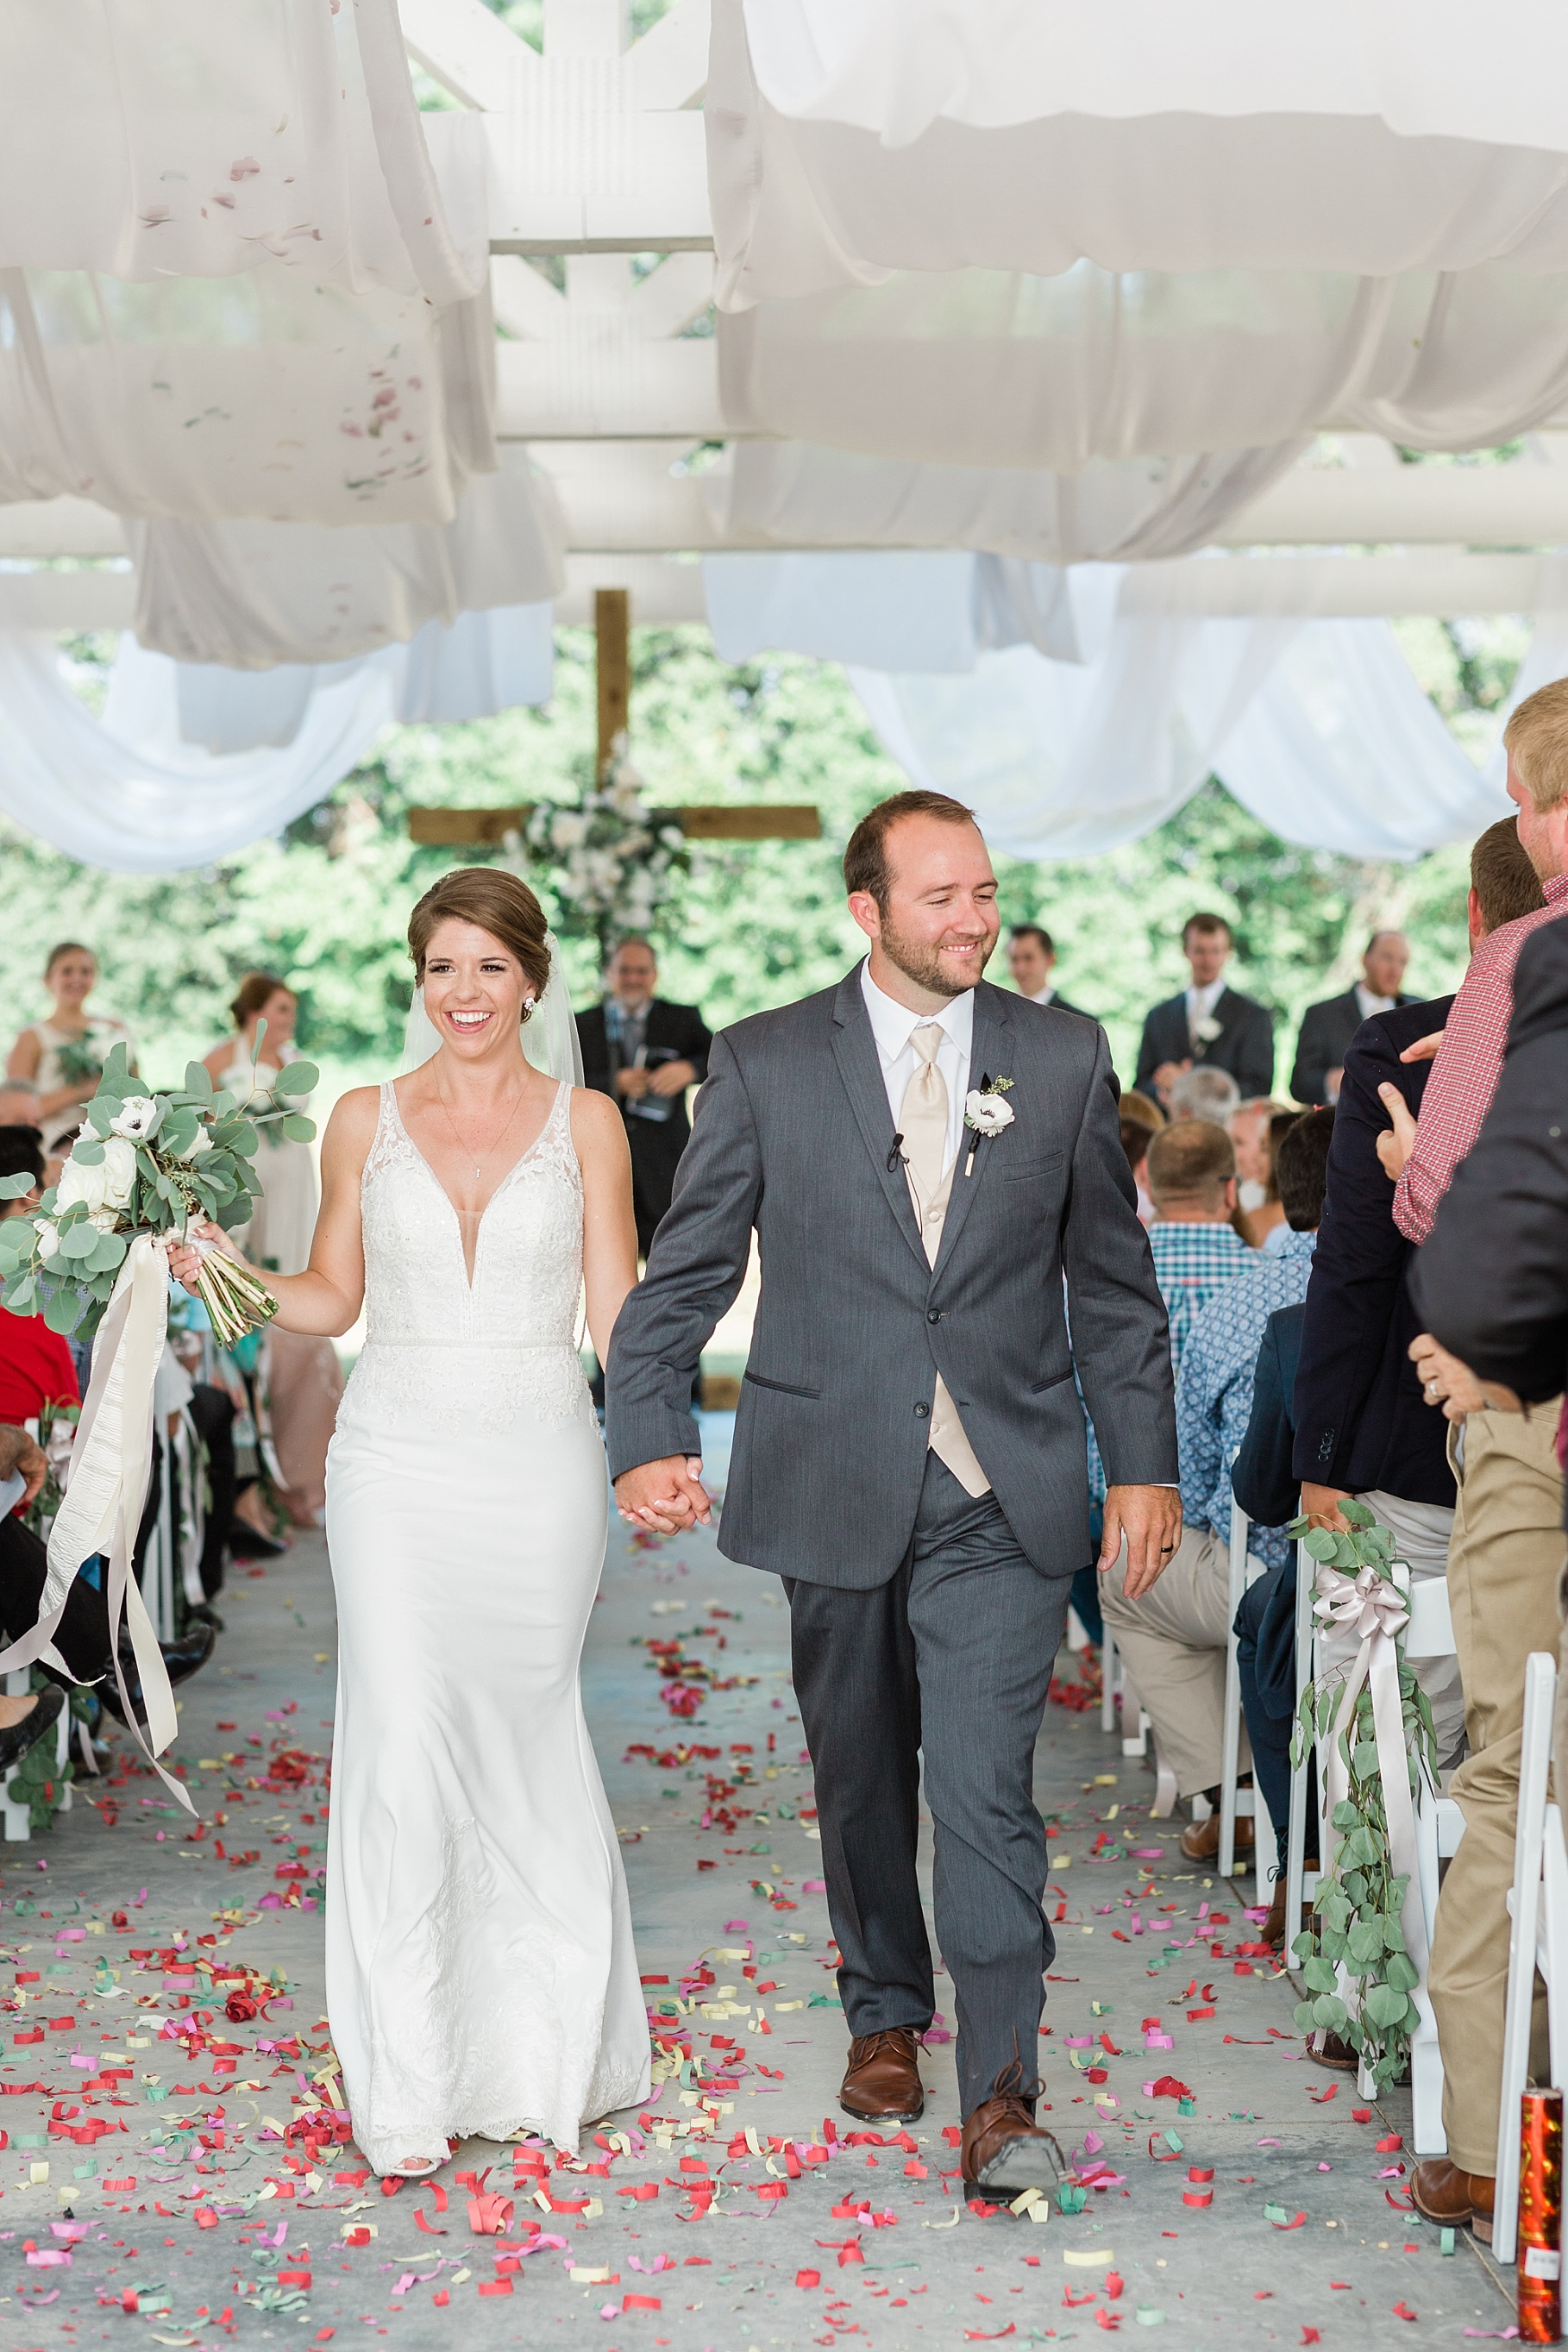 Wedding Ceremony with Confetti Pop at Emerson Fields Venue by Associate Wedding Photographer for Kelsi Kliethermes Photography Best Columbia Missouri and Maui Hawaii Wedding Photographer_0053.jpg